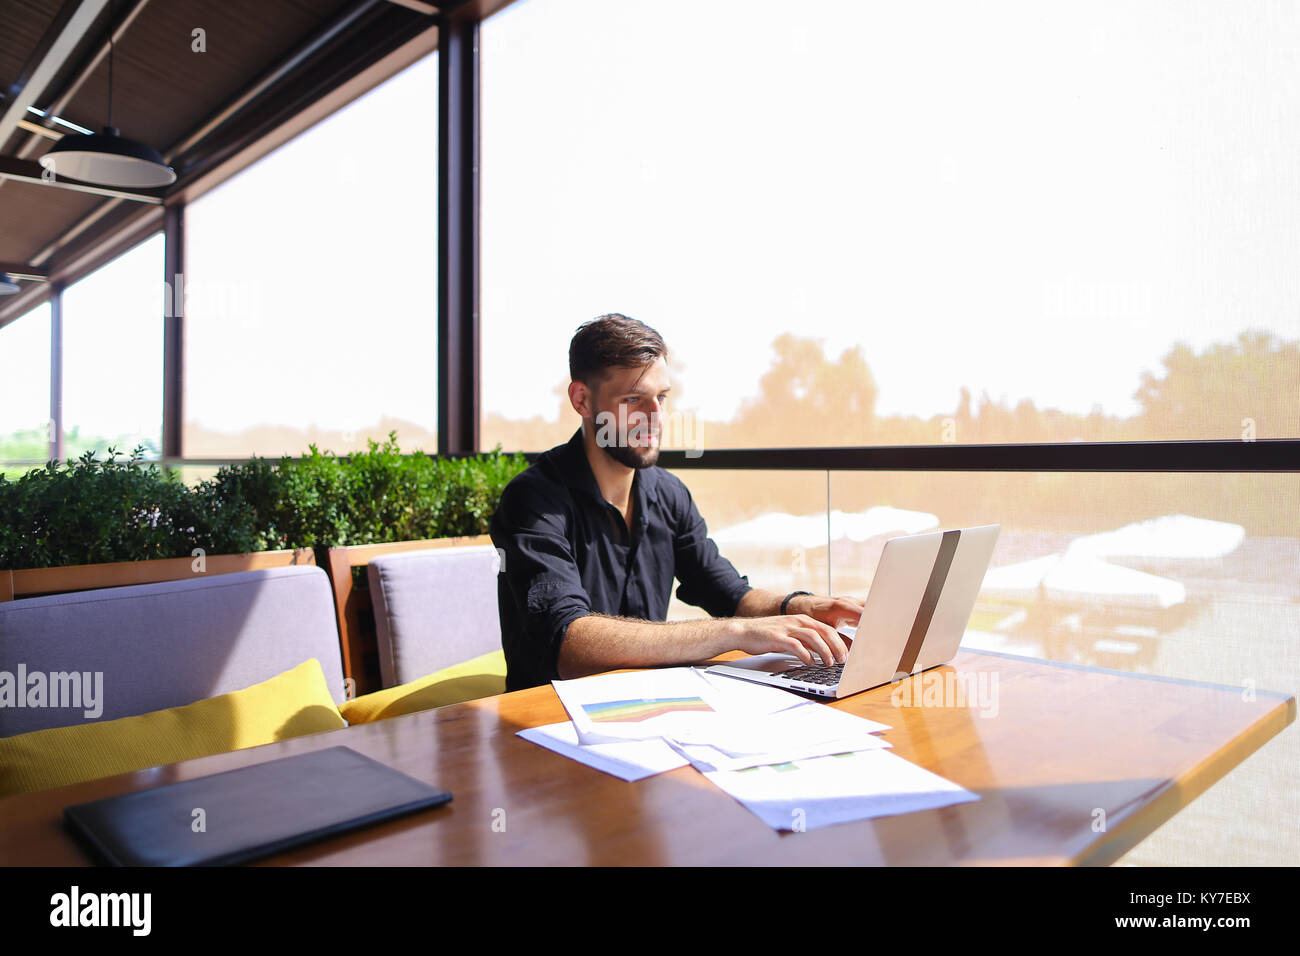 Successful foreman using laptop and documents at cafe. - Stock Image